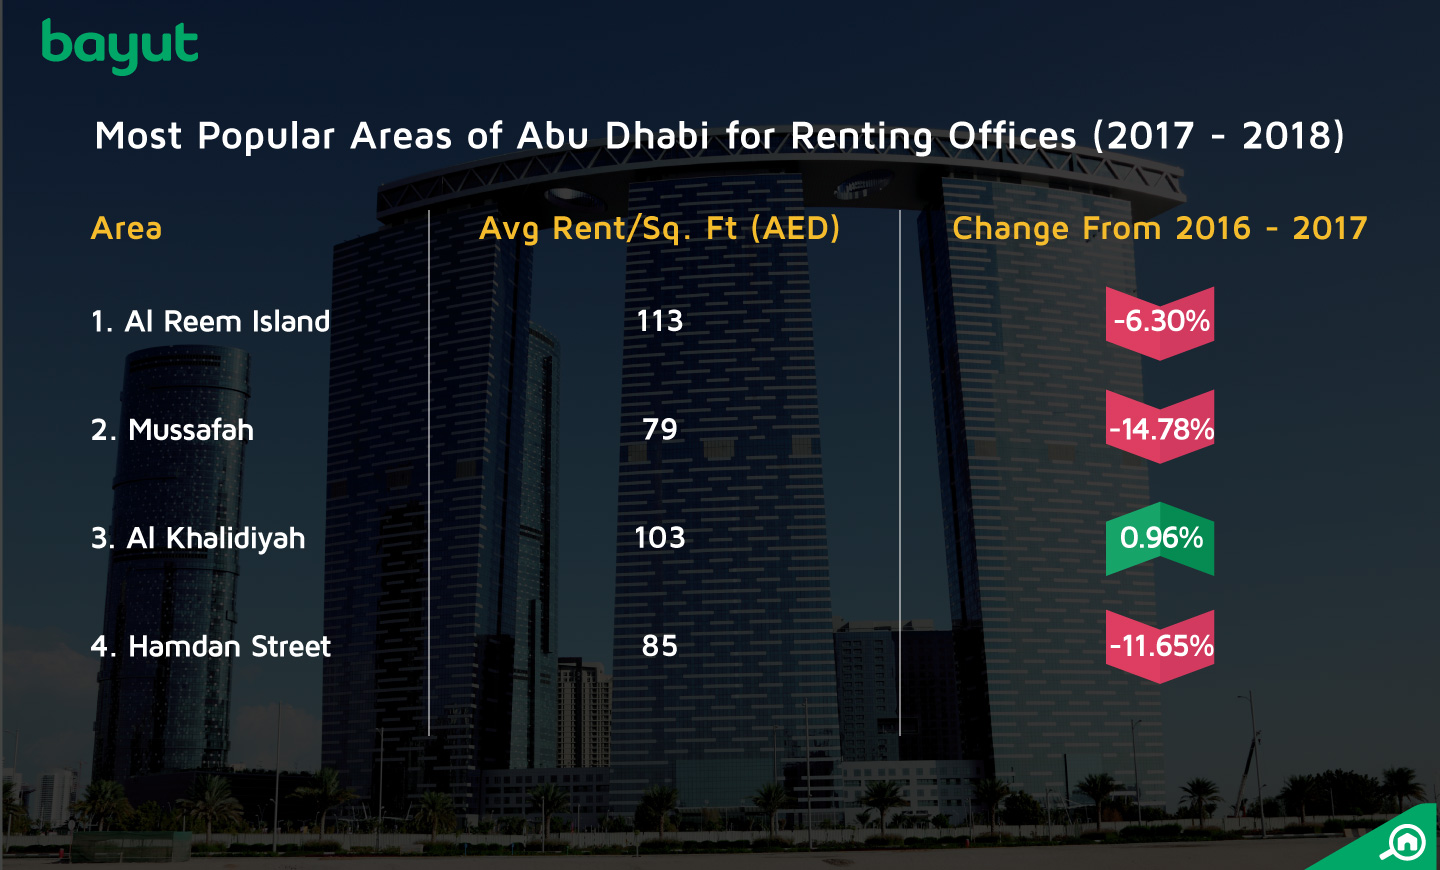 The top areas for renting offices in Abu Dhabi